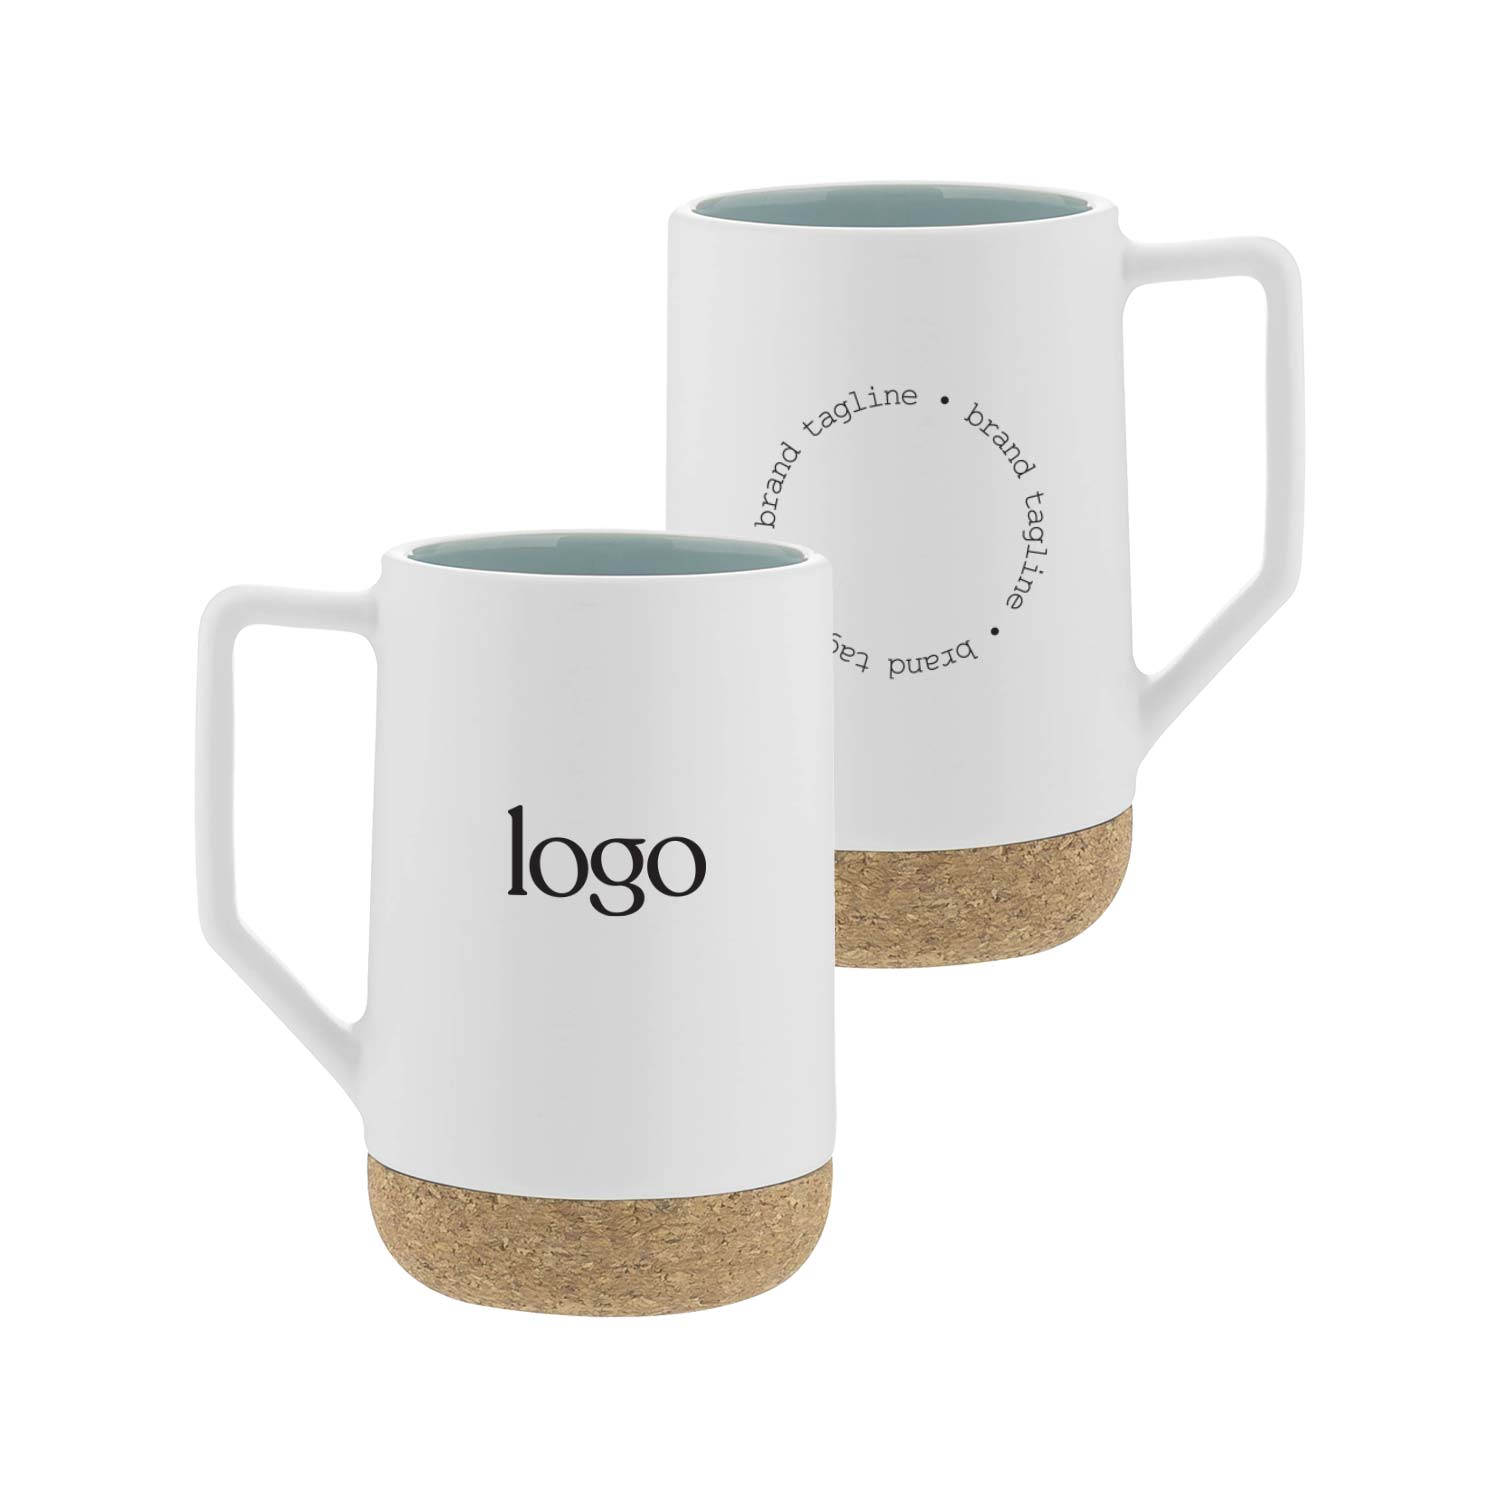 298566 logan stoneware mug one color imprint up to a full wrap